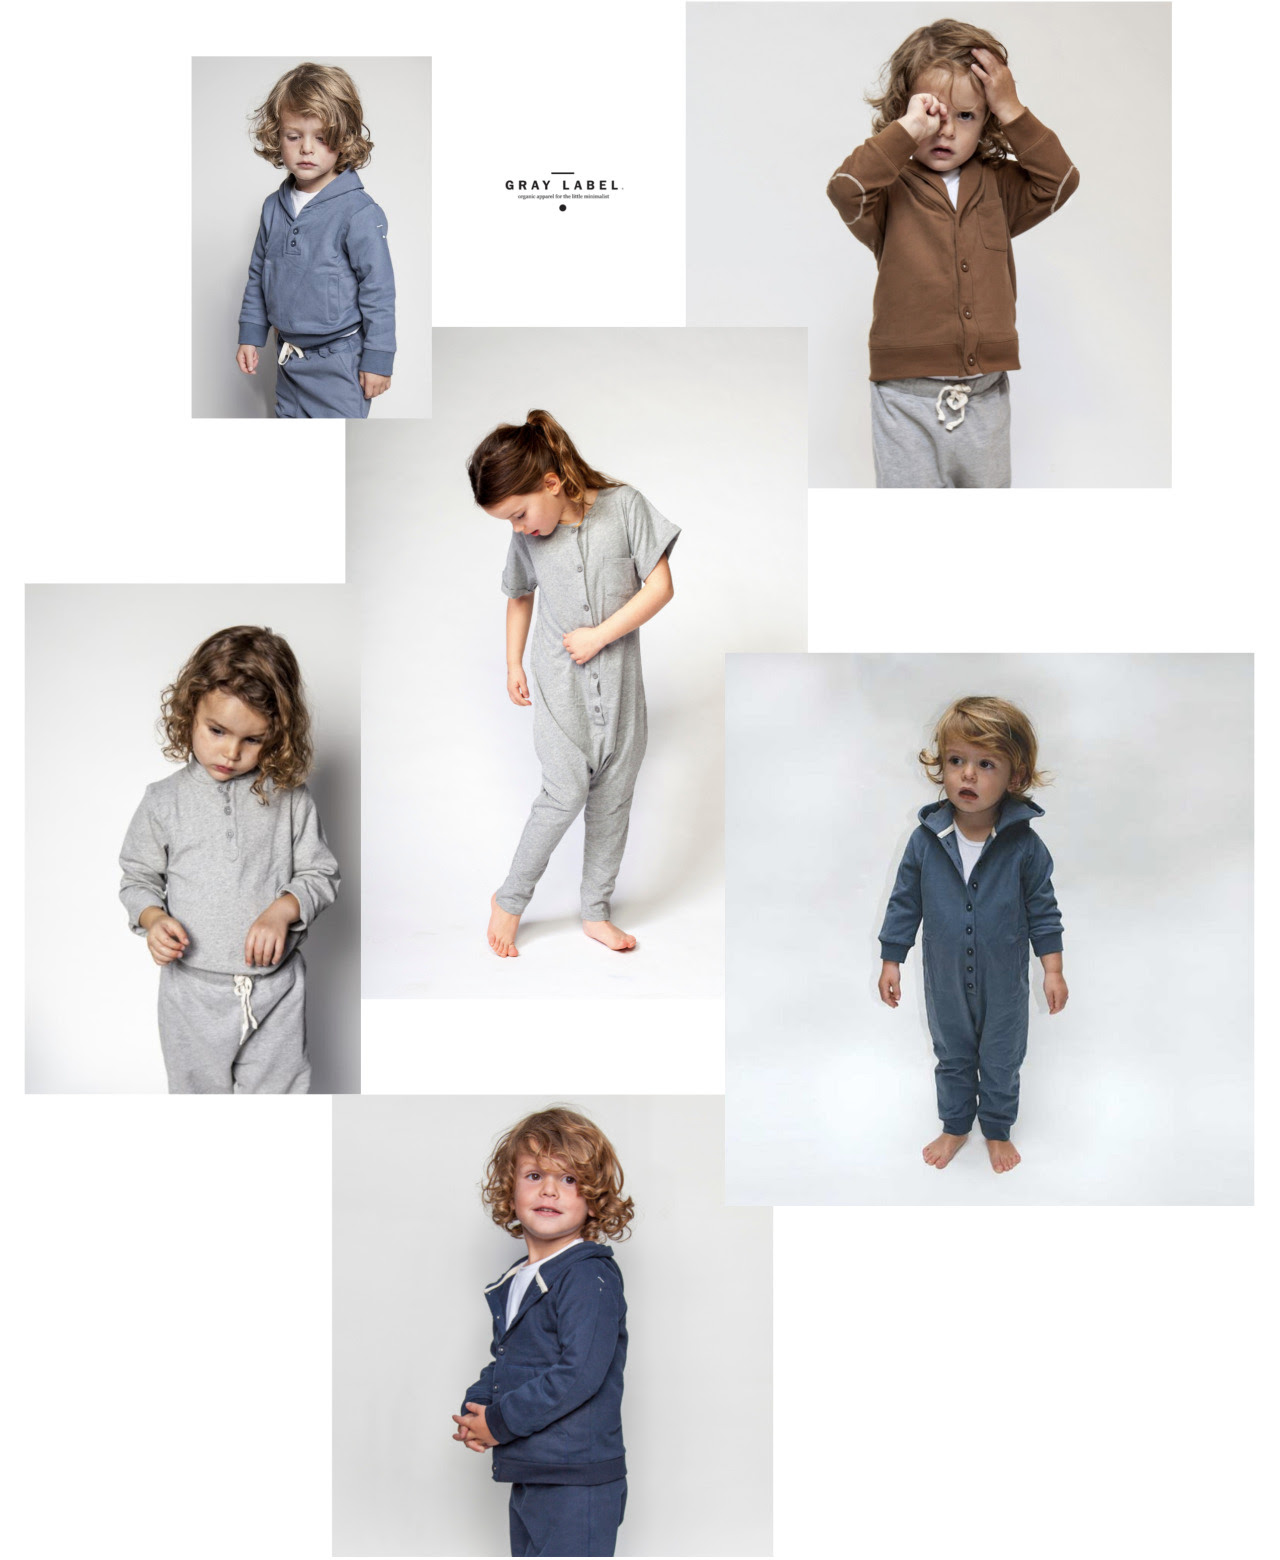 It's like honey to a bee, this dutch label and its effortless, basic collection.  Gray label clearly appreciates many of the same things as we do at Kidproof. Quality basics, soft fabrics, easy to wear styles in toned town shades.  Can't wait to receive our first tryouts soon!